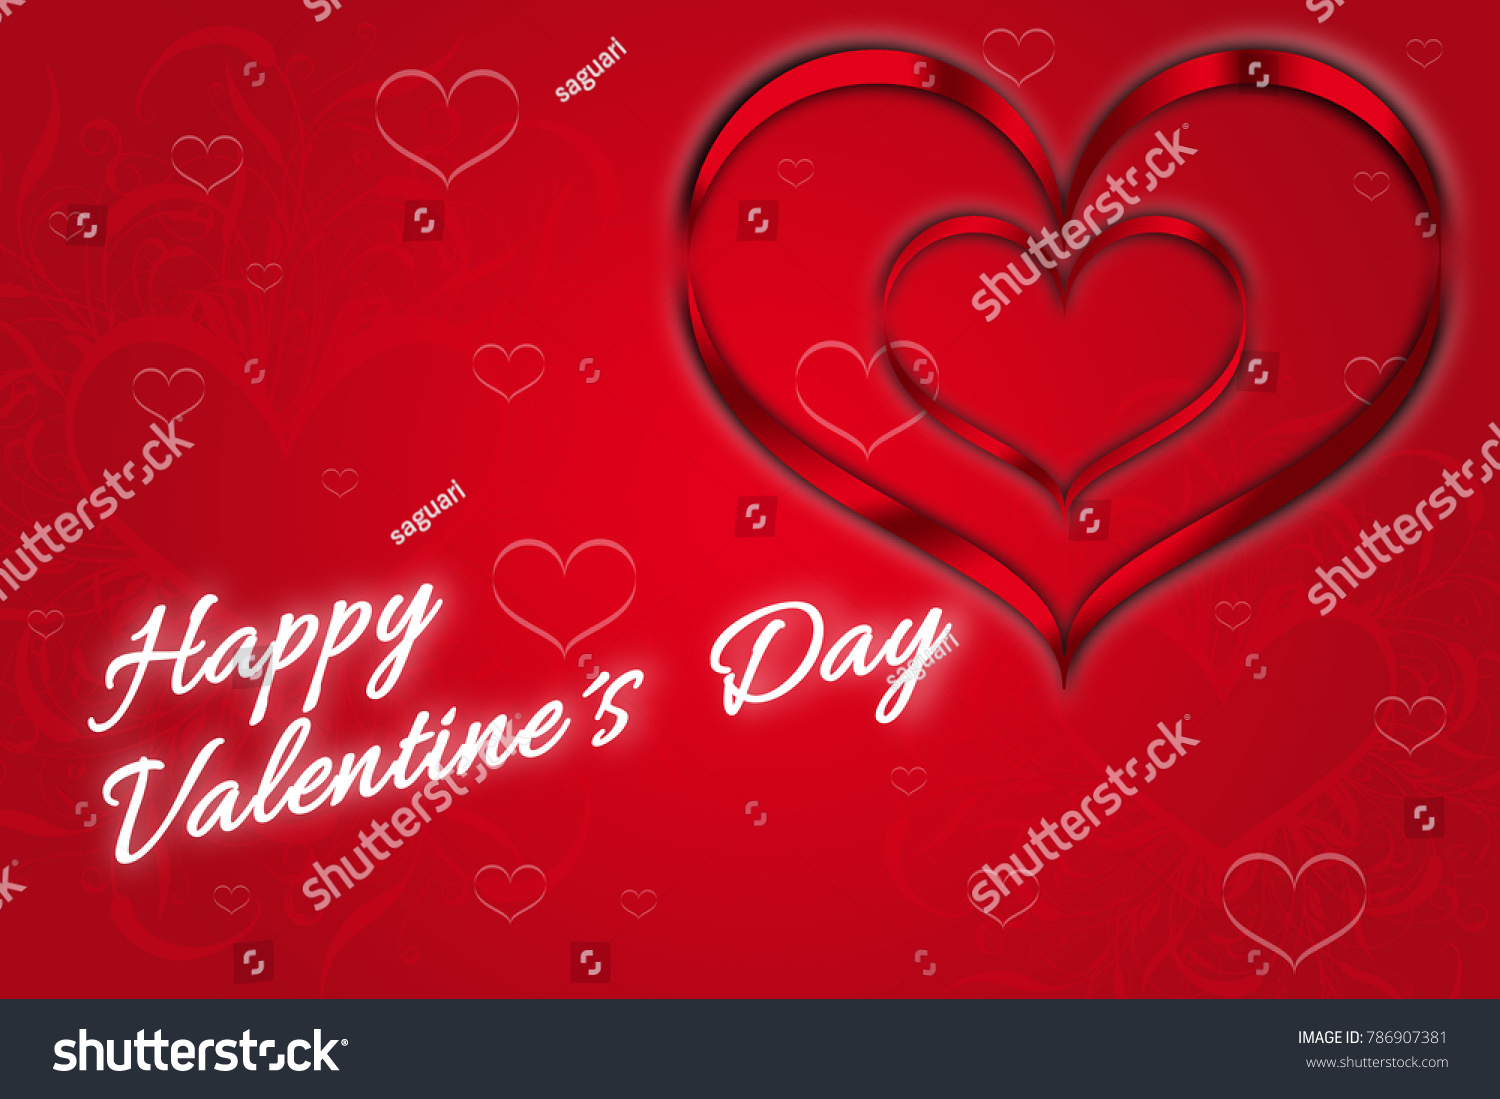 Celebrate valentines day send card picture stock illustration celebrate valentines day and send a card or picture for your heart kristyandbryce Choice Image